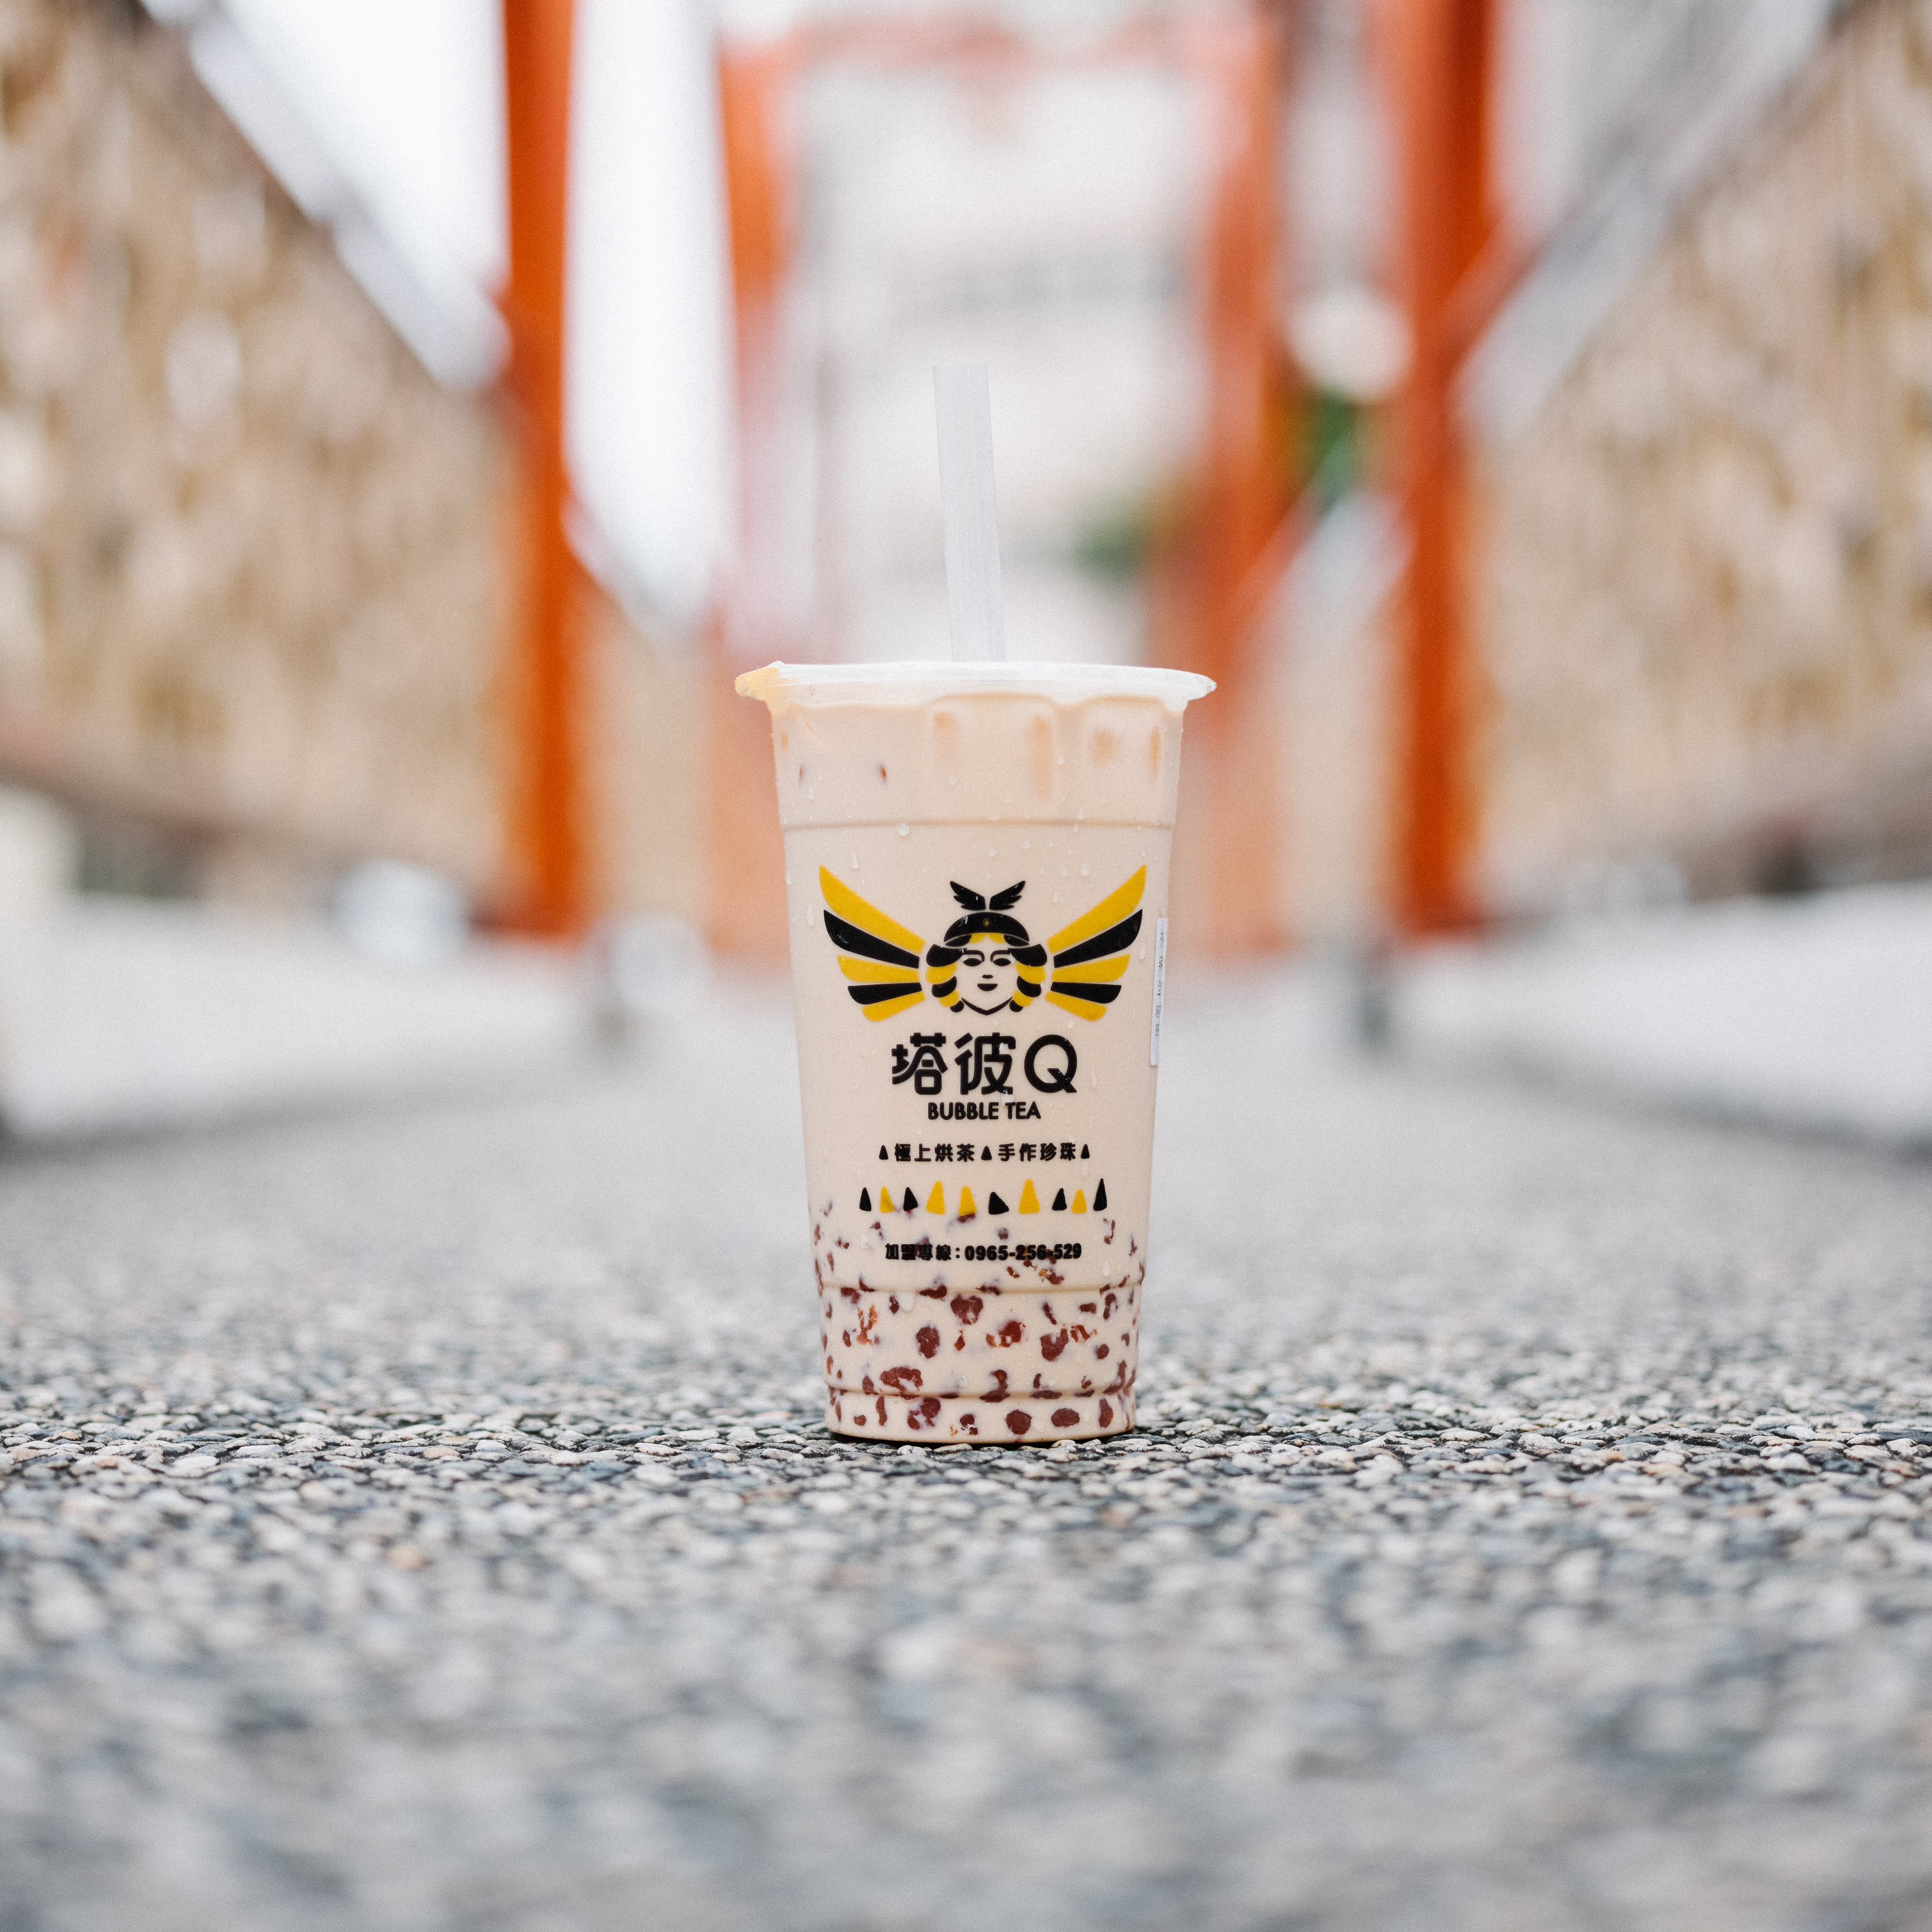 Boba Explained: A Sipper's Guide to Taiwan's Signature Drink